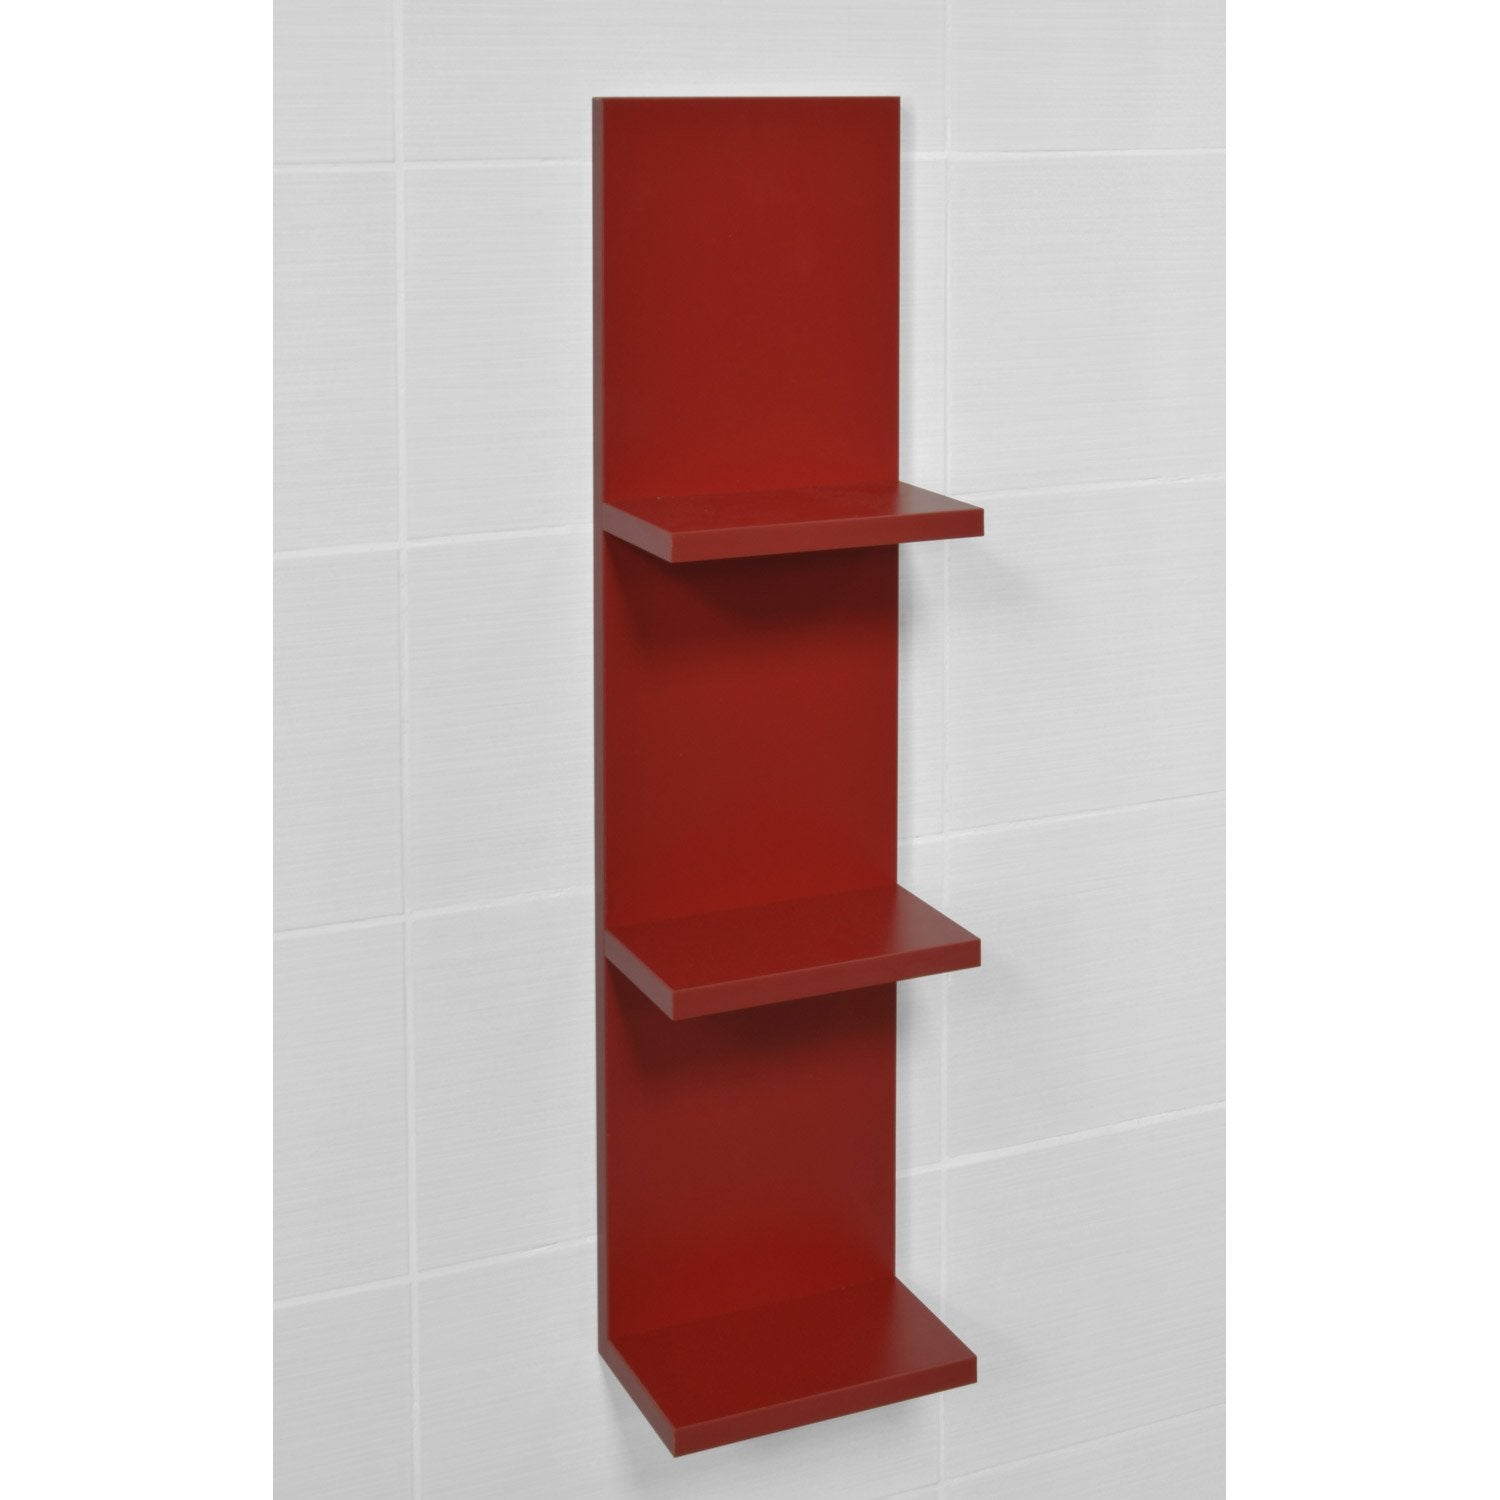 etag re de wc coin d 39 o rouge rouge n 3 leroy merlin. Black Bedroom Furniture Sets. Home Design Ideas